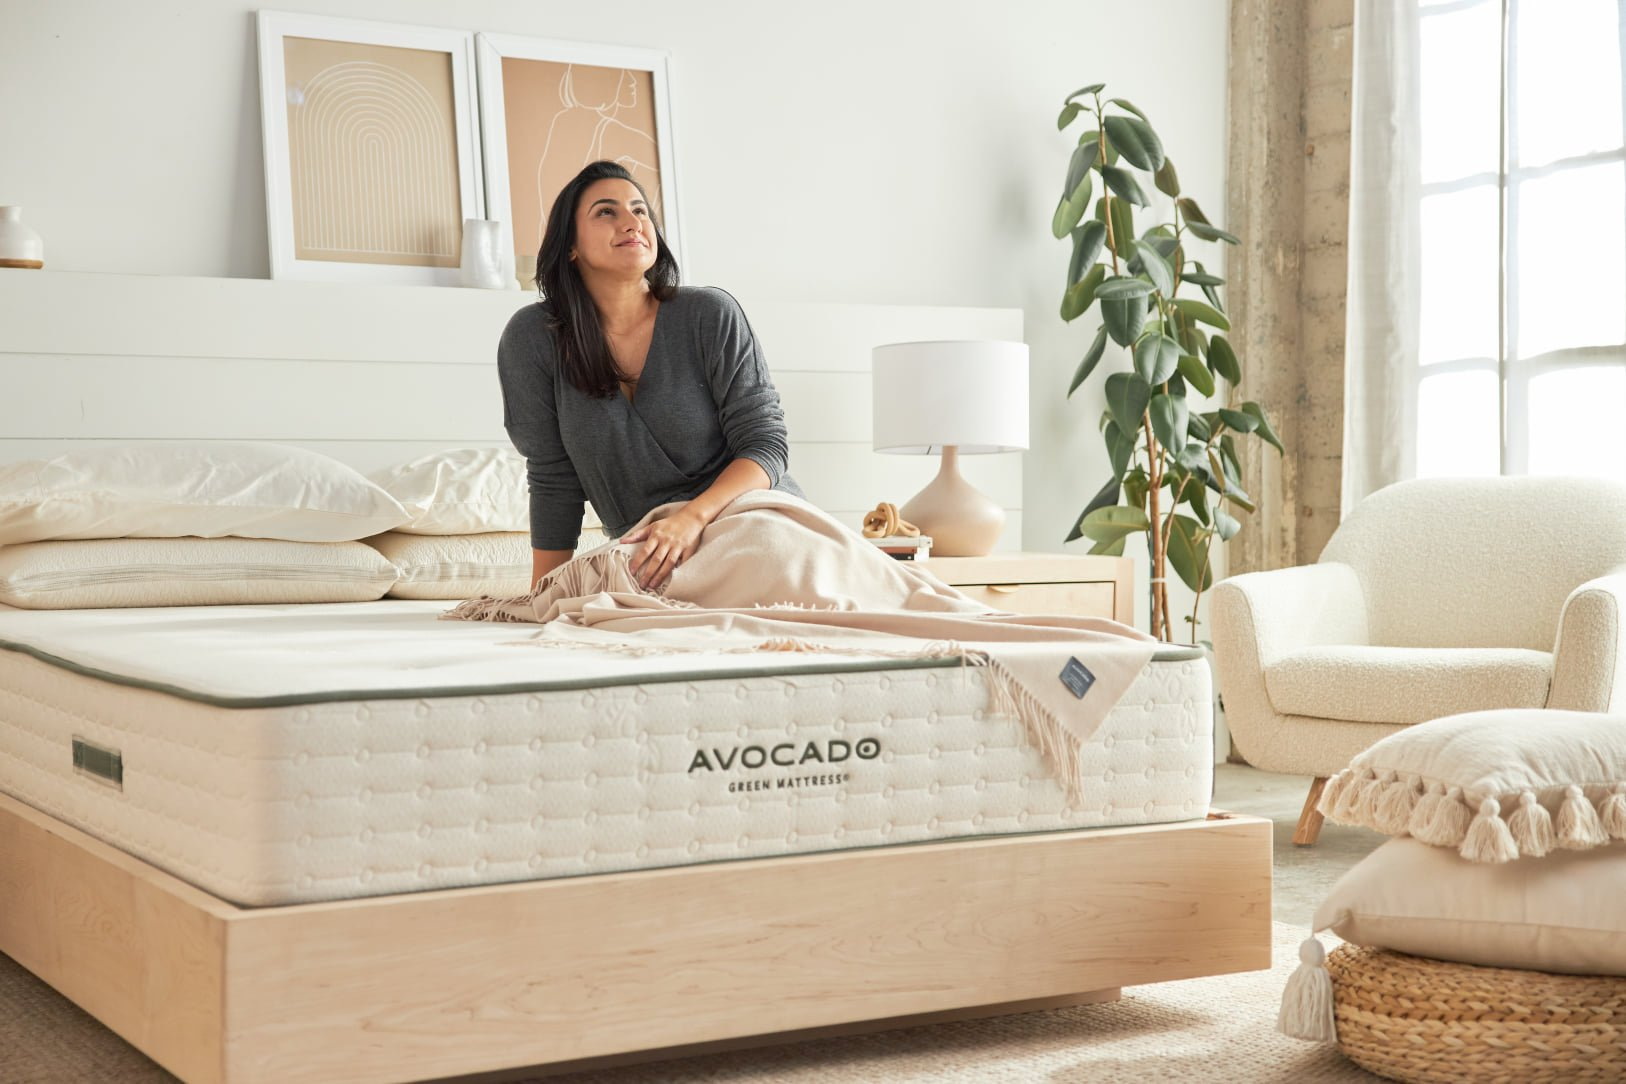 Sustainable furniture & home decor: woman sitting on unmade bed, neutral decor in background